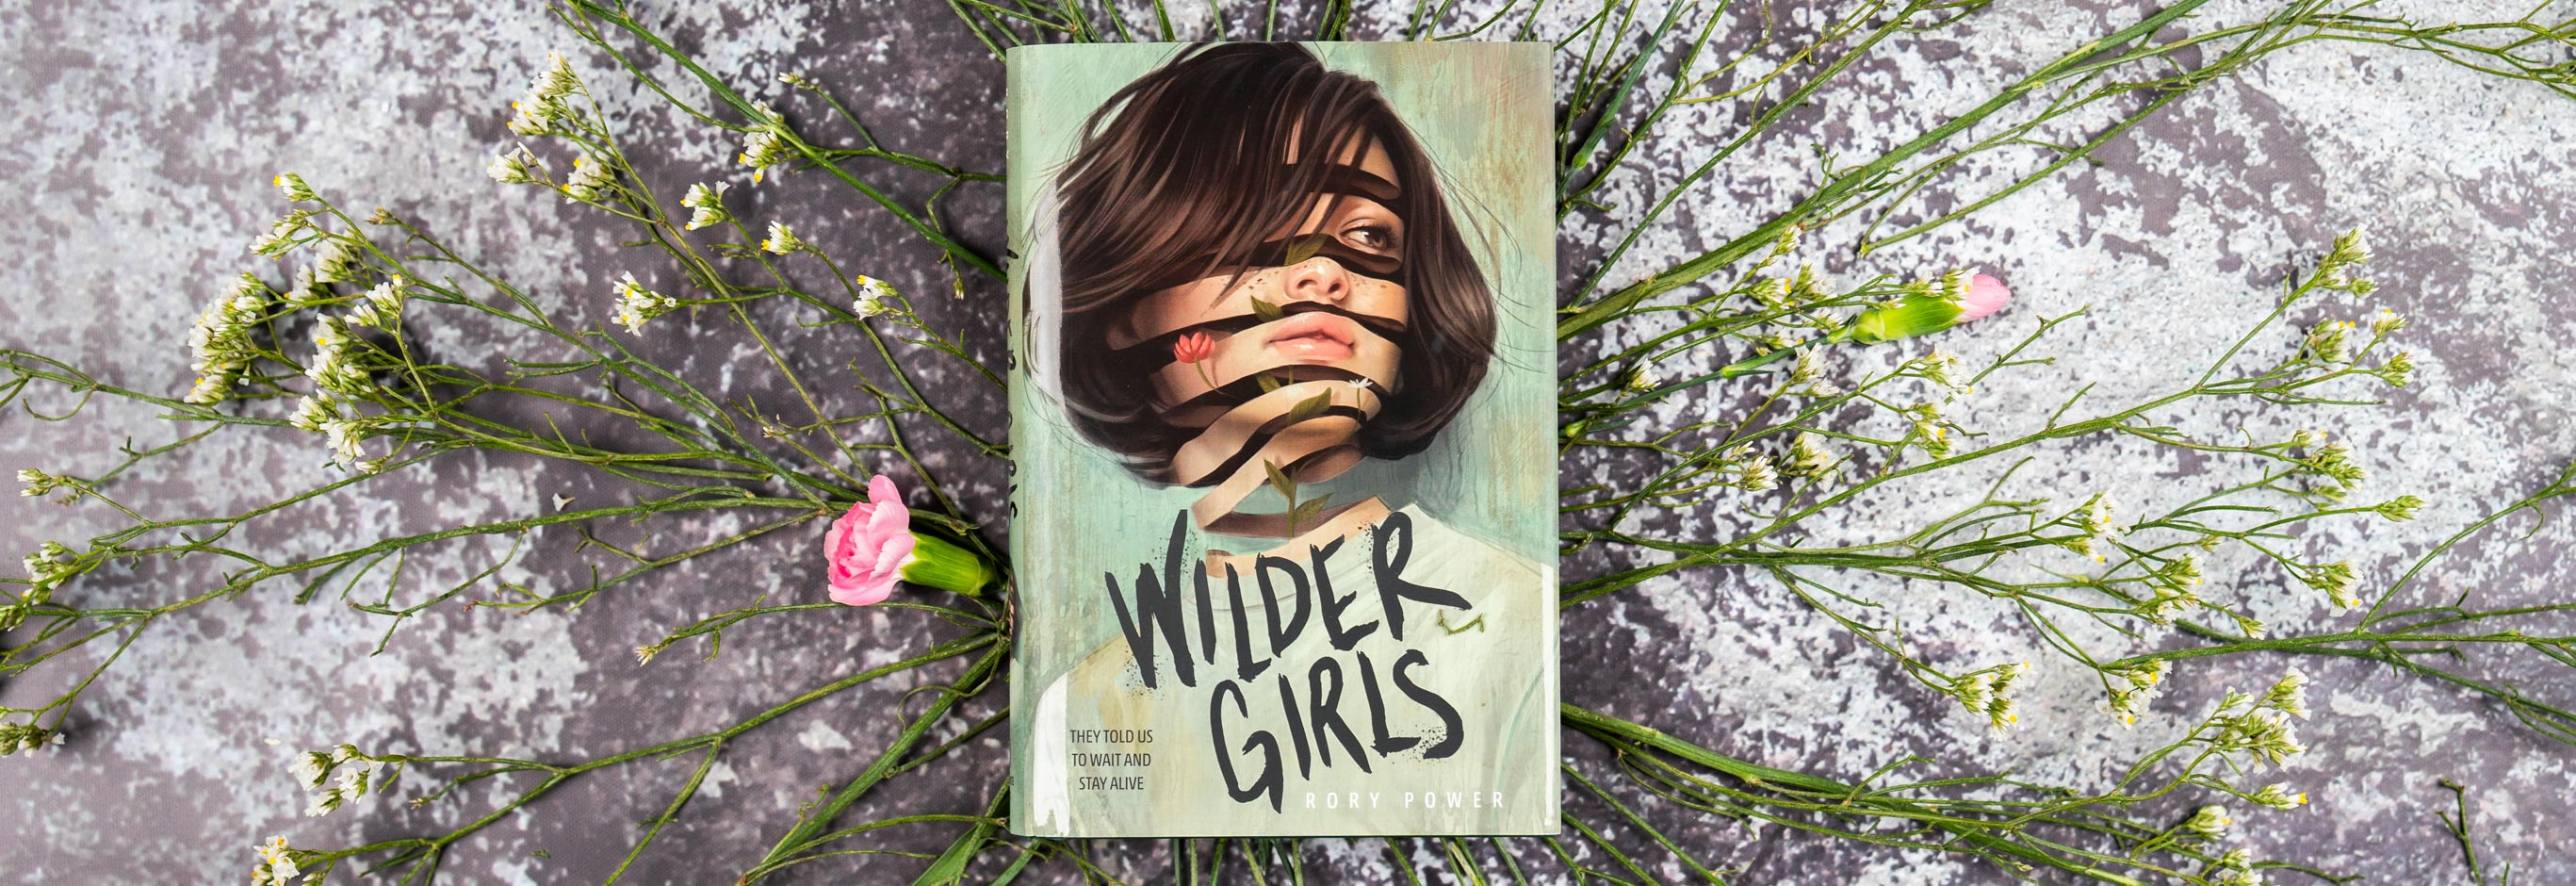 Watch the Official Book Trailer for Wilder Girls by Rory Power